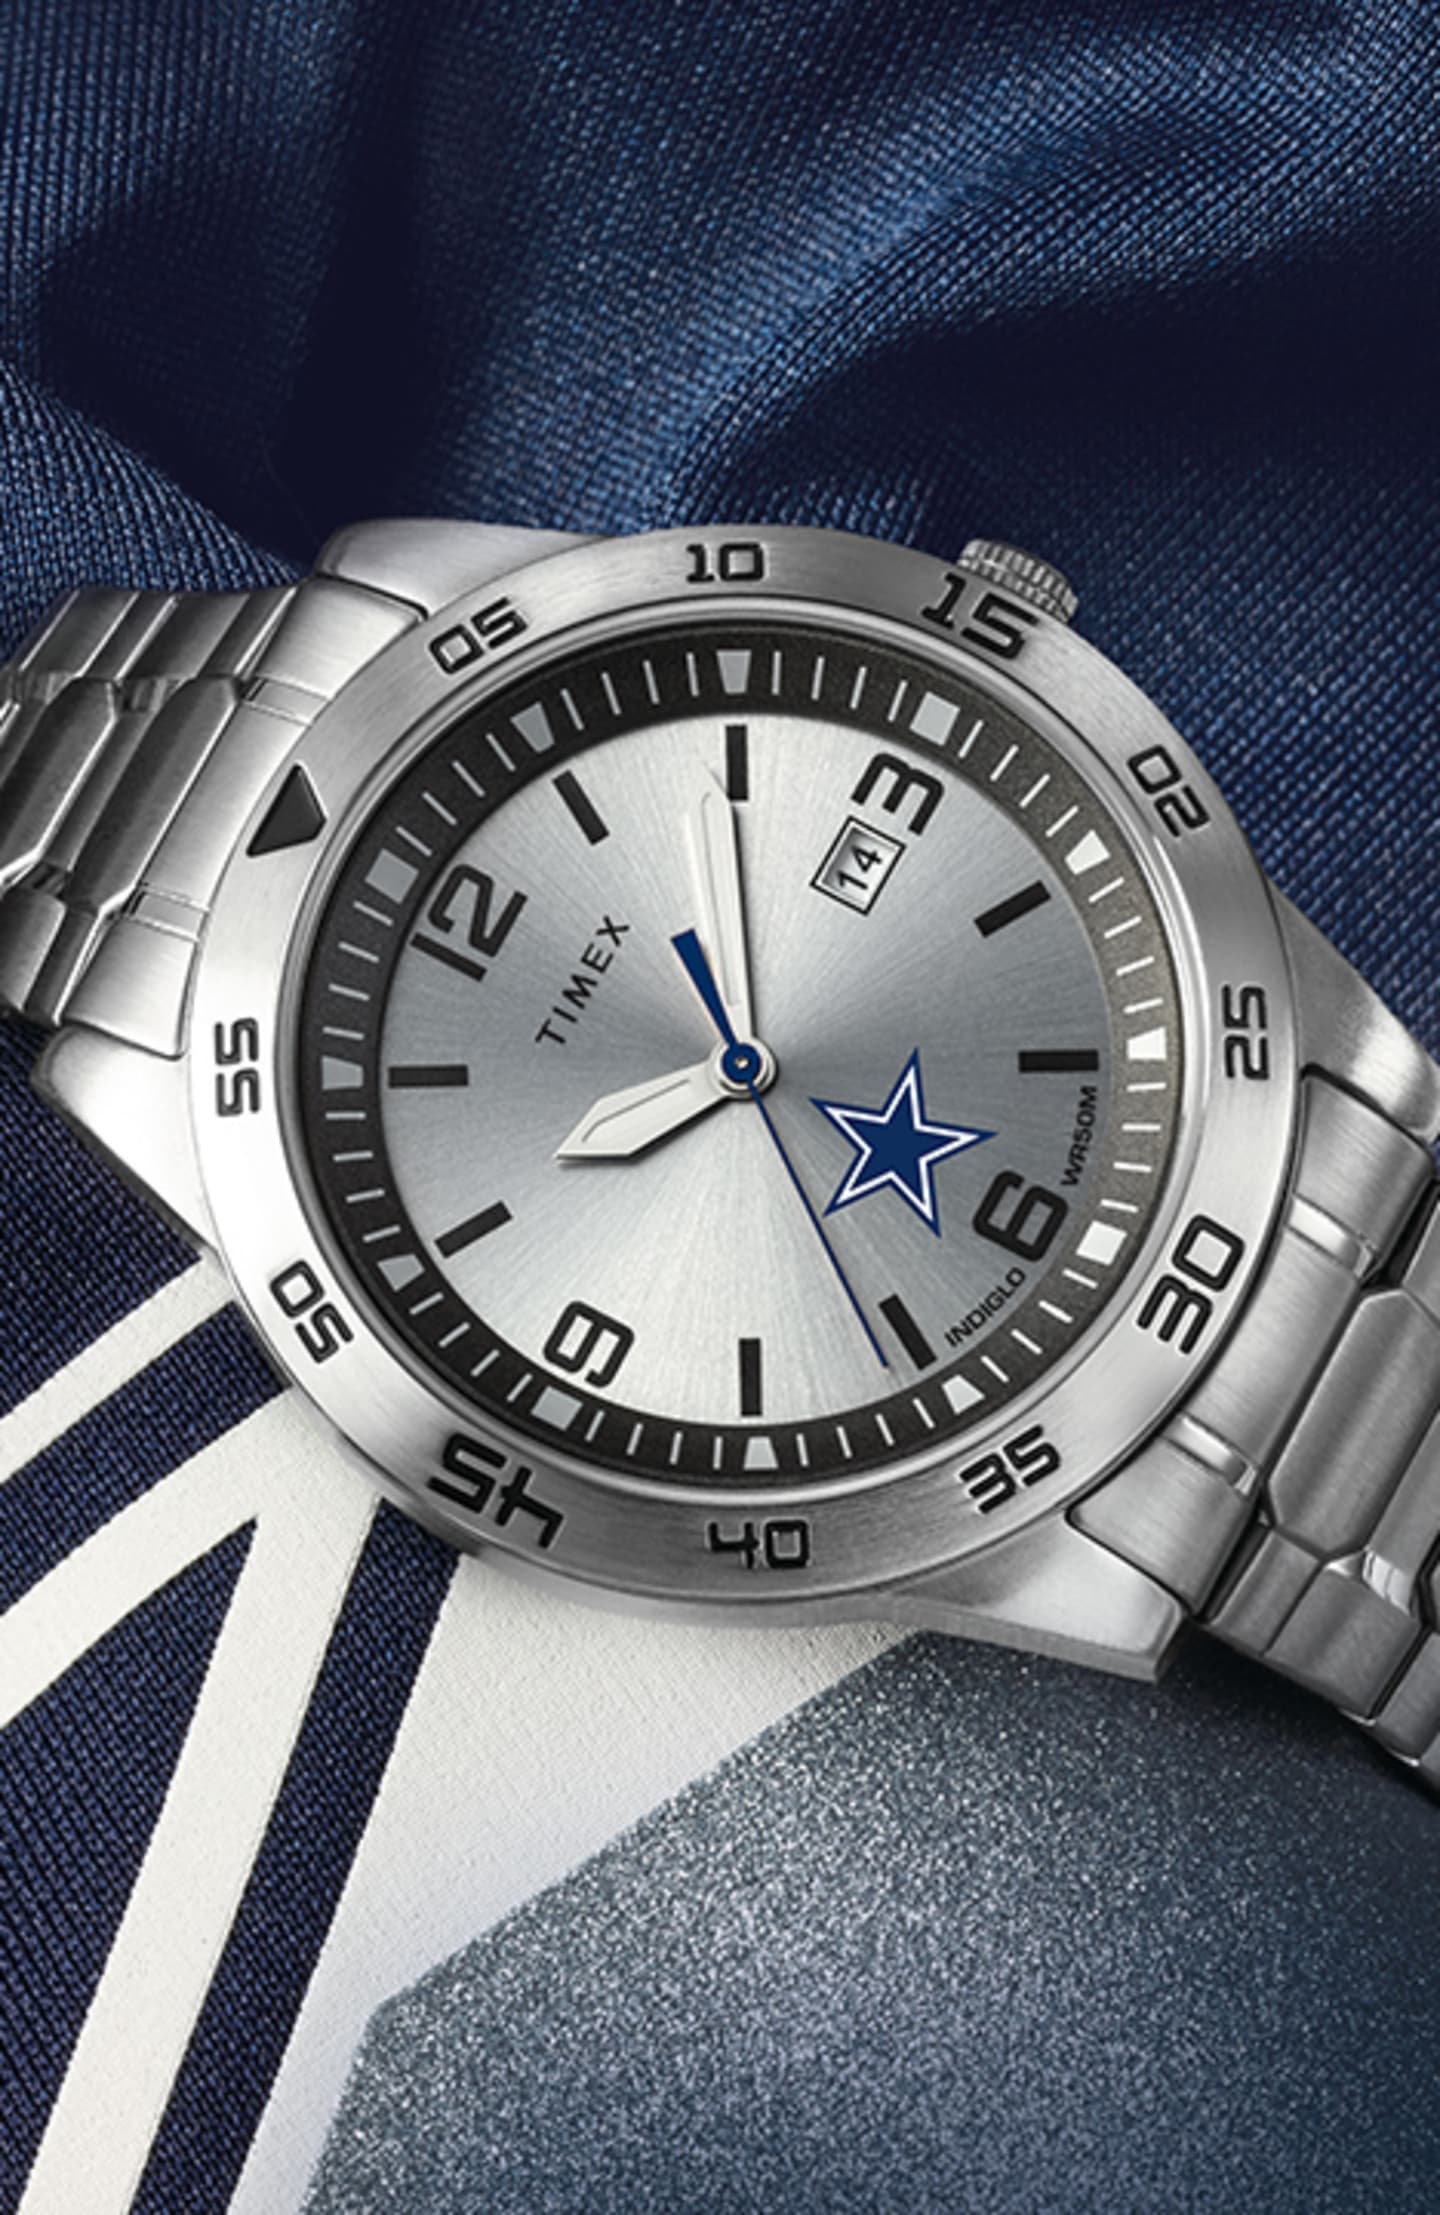 Silver Timex Cowboys Watch With Logo In Center